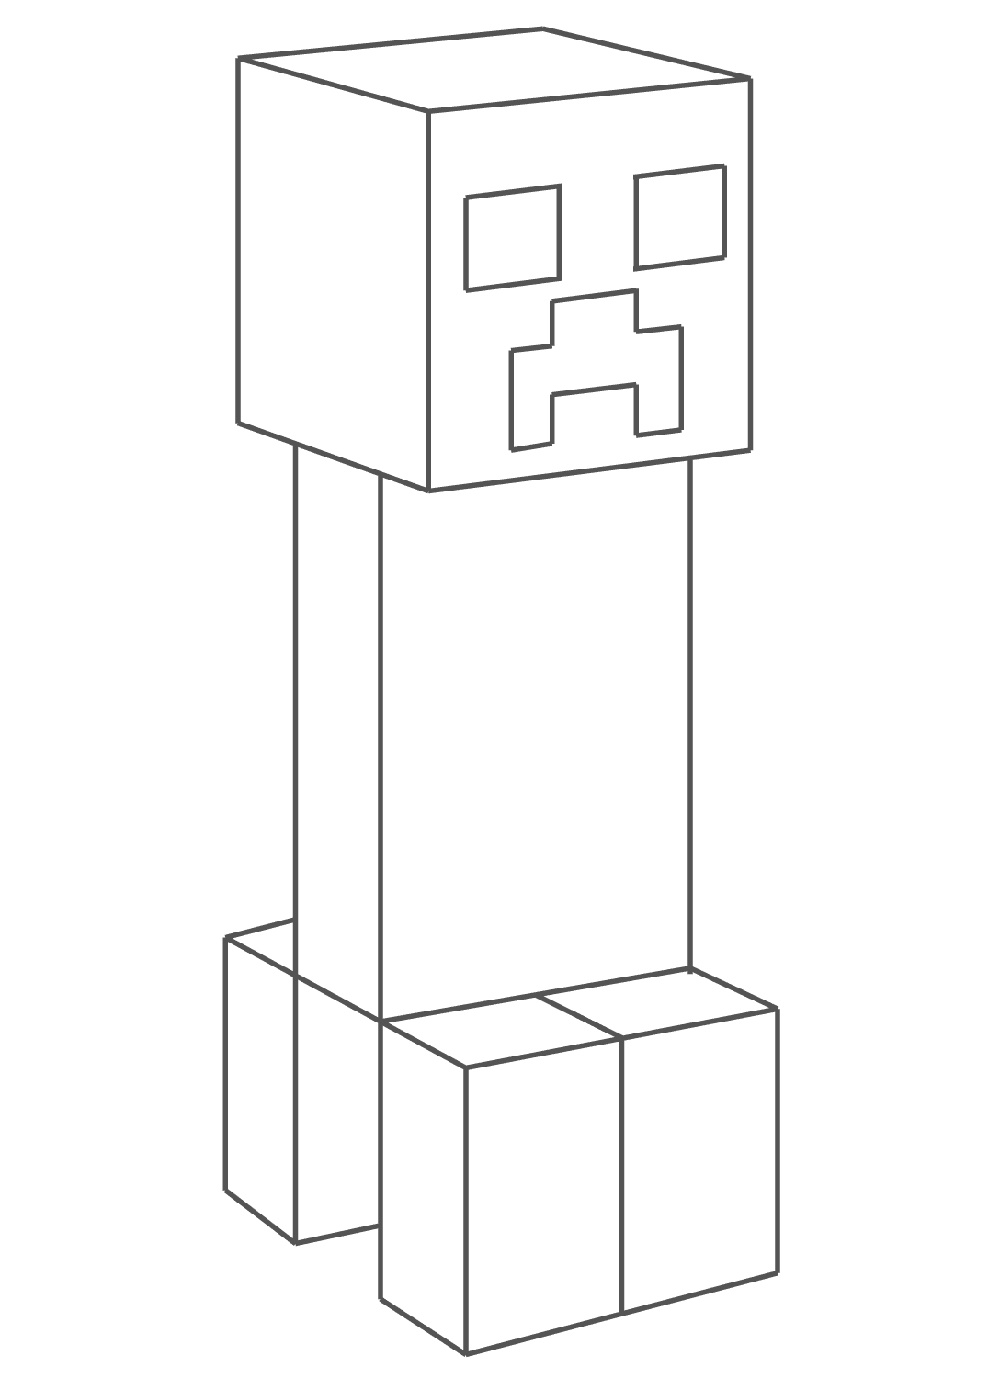 Minecraft Creeper Coloring Page Printable